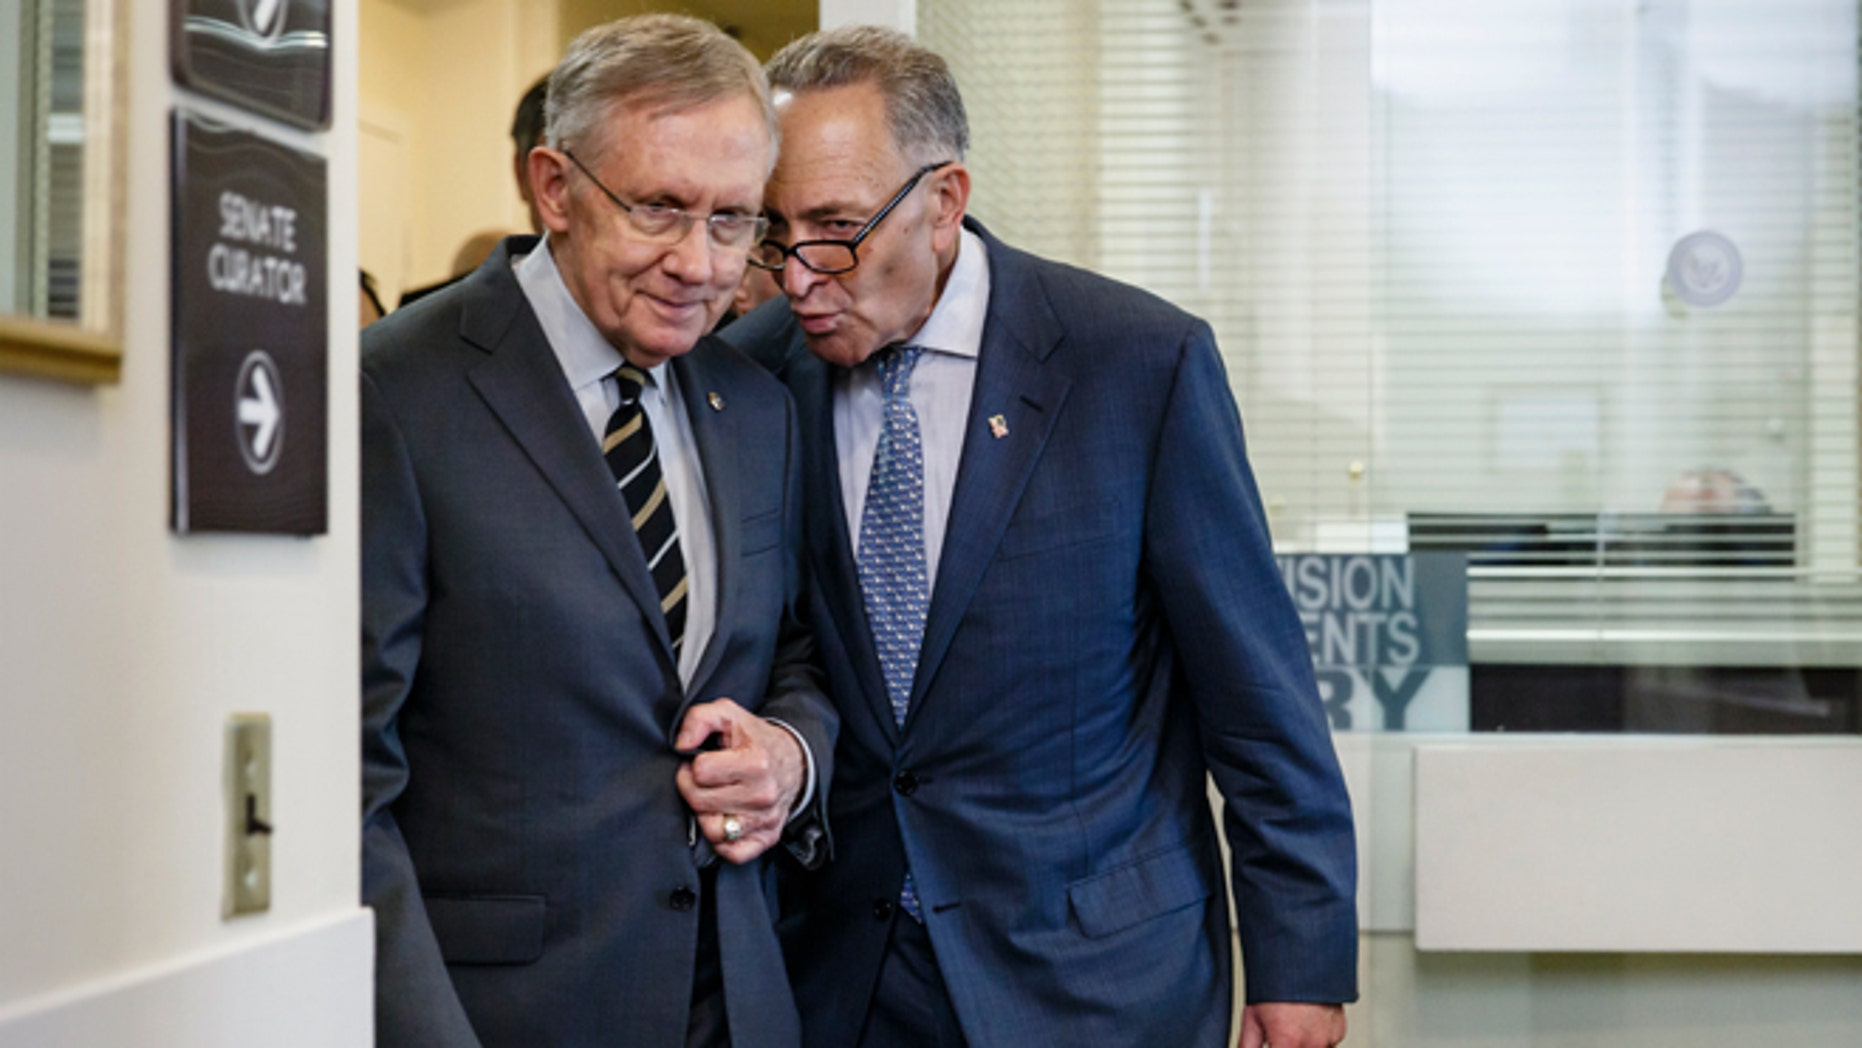 April 30, 2014: Sen. Charles Schumer, D-N.Y., the Democratic Policy Committee chairman, right, confers with Senate Majority Leader Harry Reid of Nev., on Capitol Hill in Washington, after a bill to raise the minimum wage was stopped in the Senate.